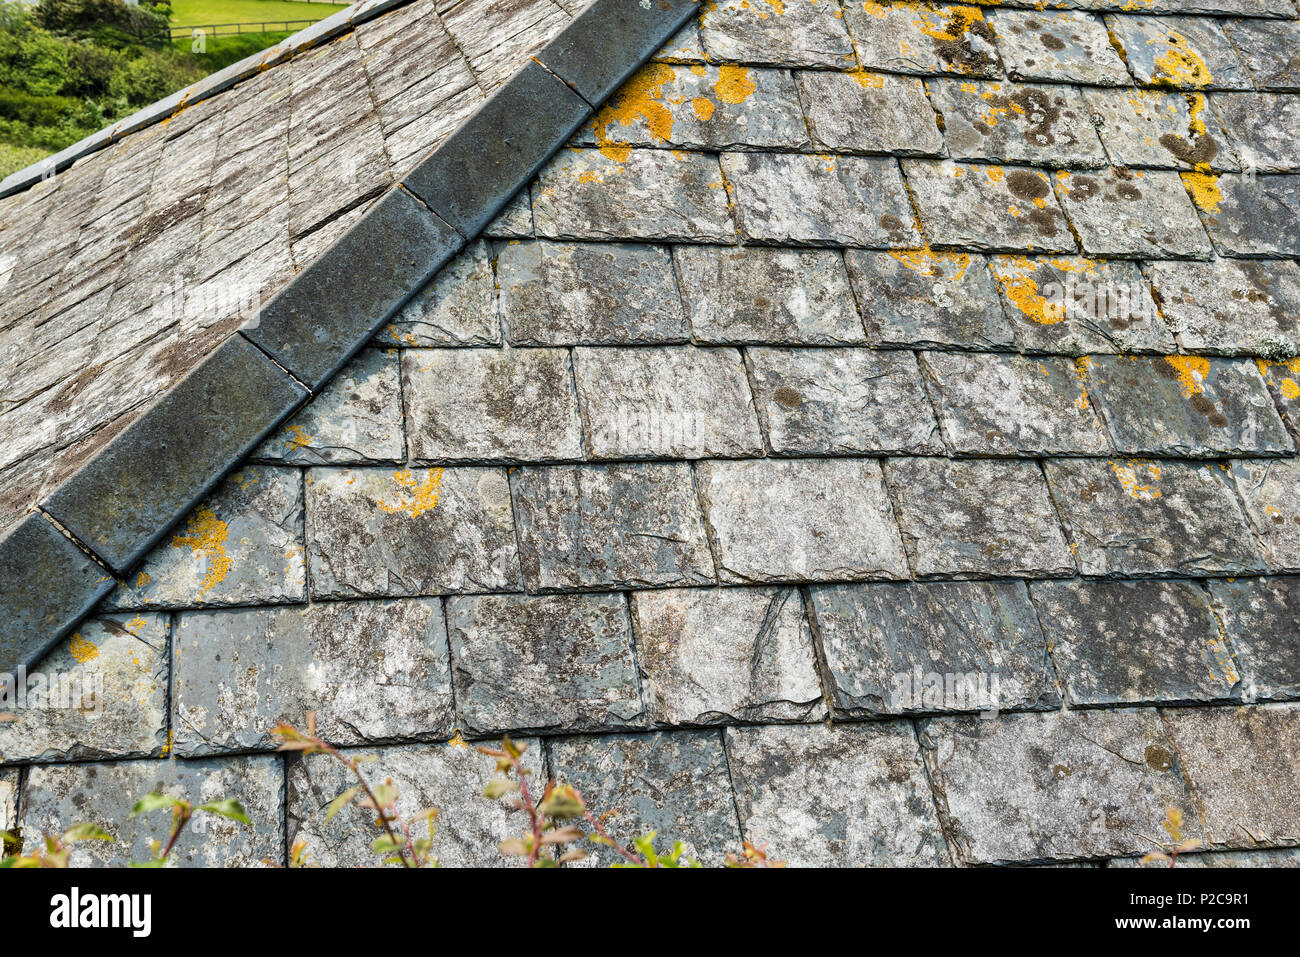 Close Up Section Of A Slate Hip Roof Old Roof In Cornwall Showing Growth Of Lichen And Moss Stock Photo Alamy